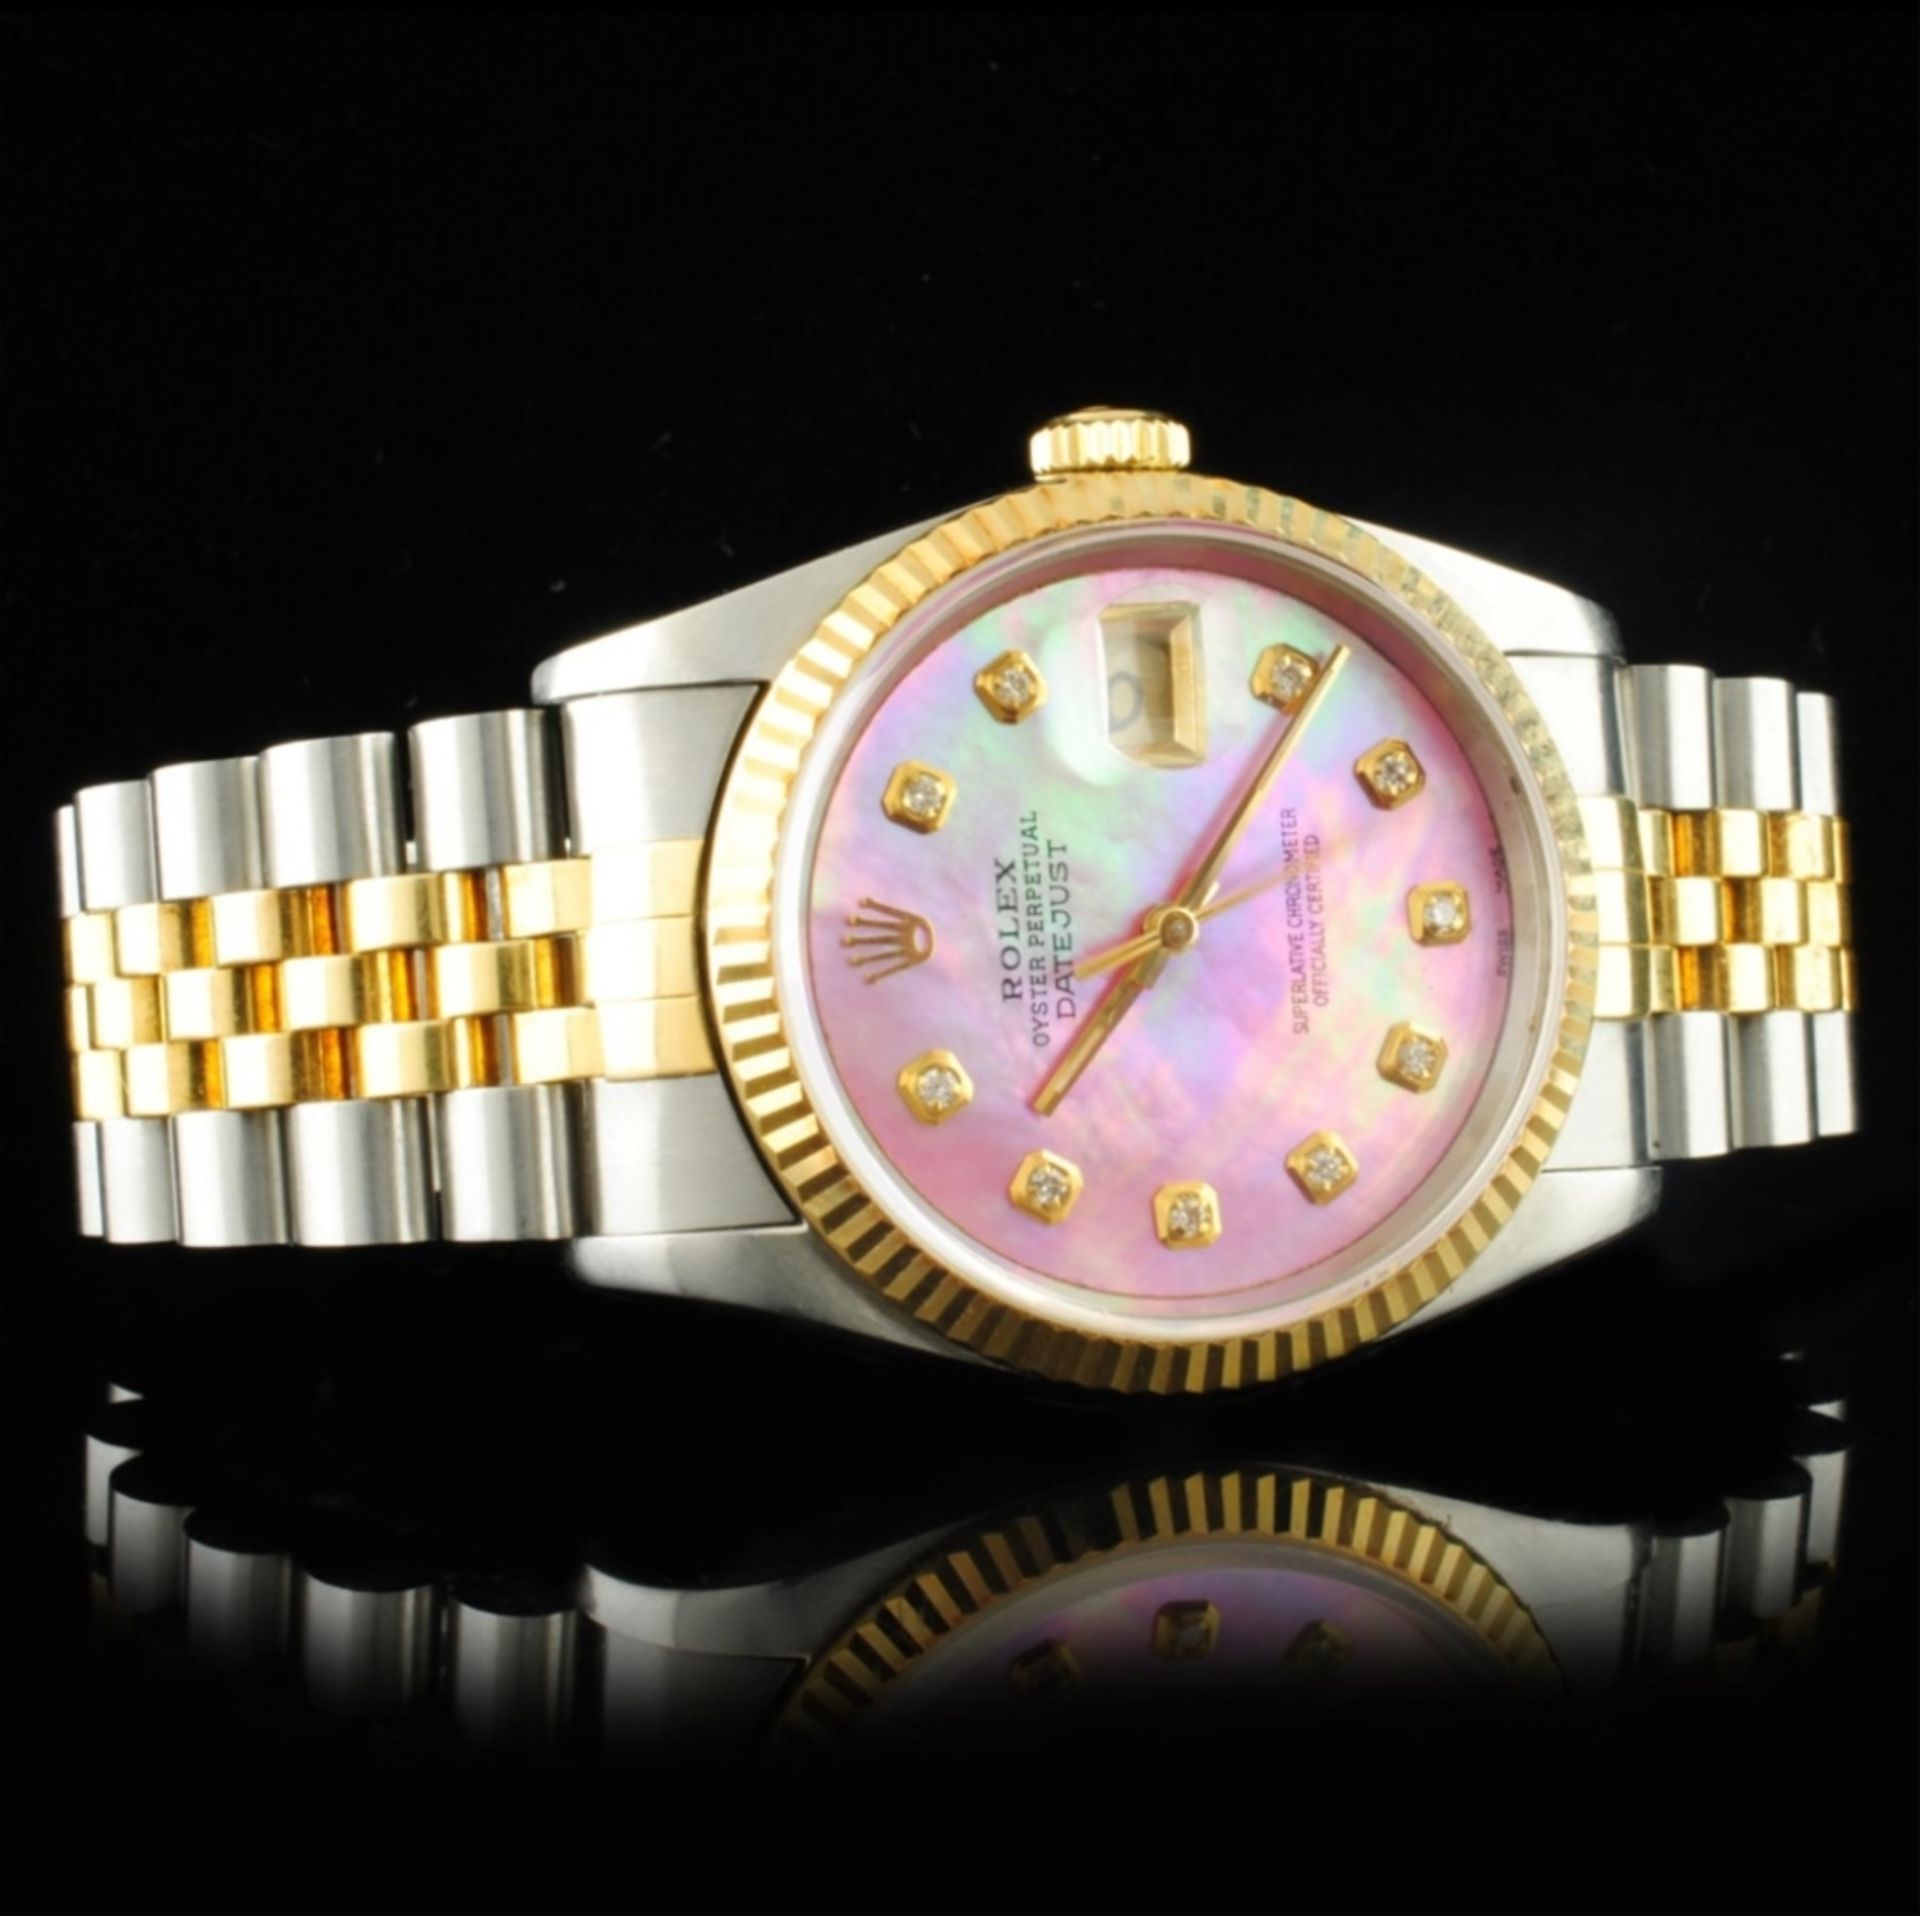 Rolex DateJust YG/SS Diamond 36MM Wristwatch - Image 3 of 5